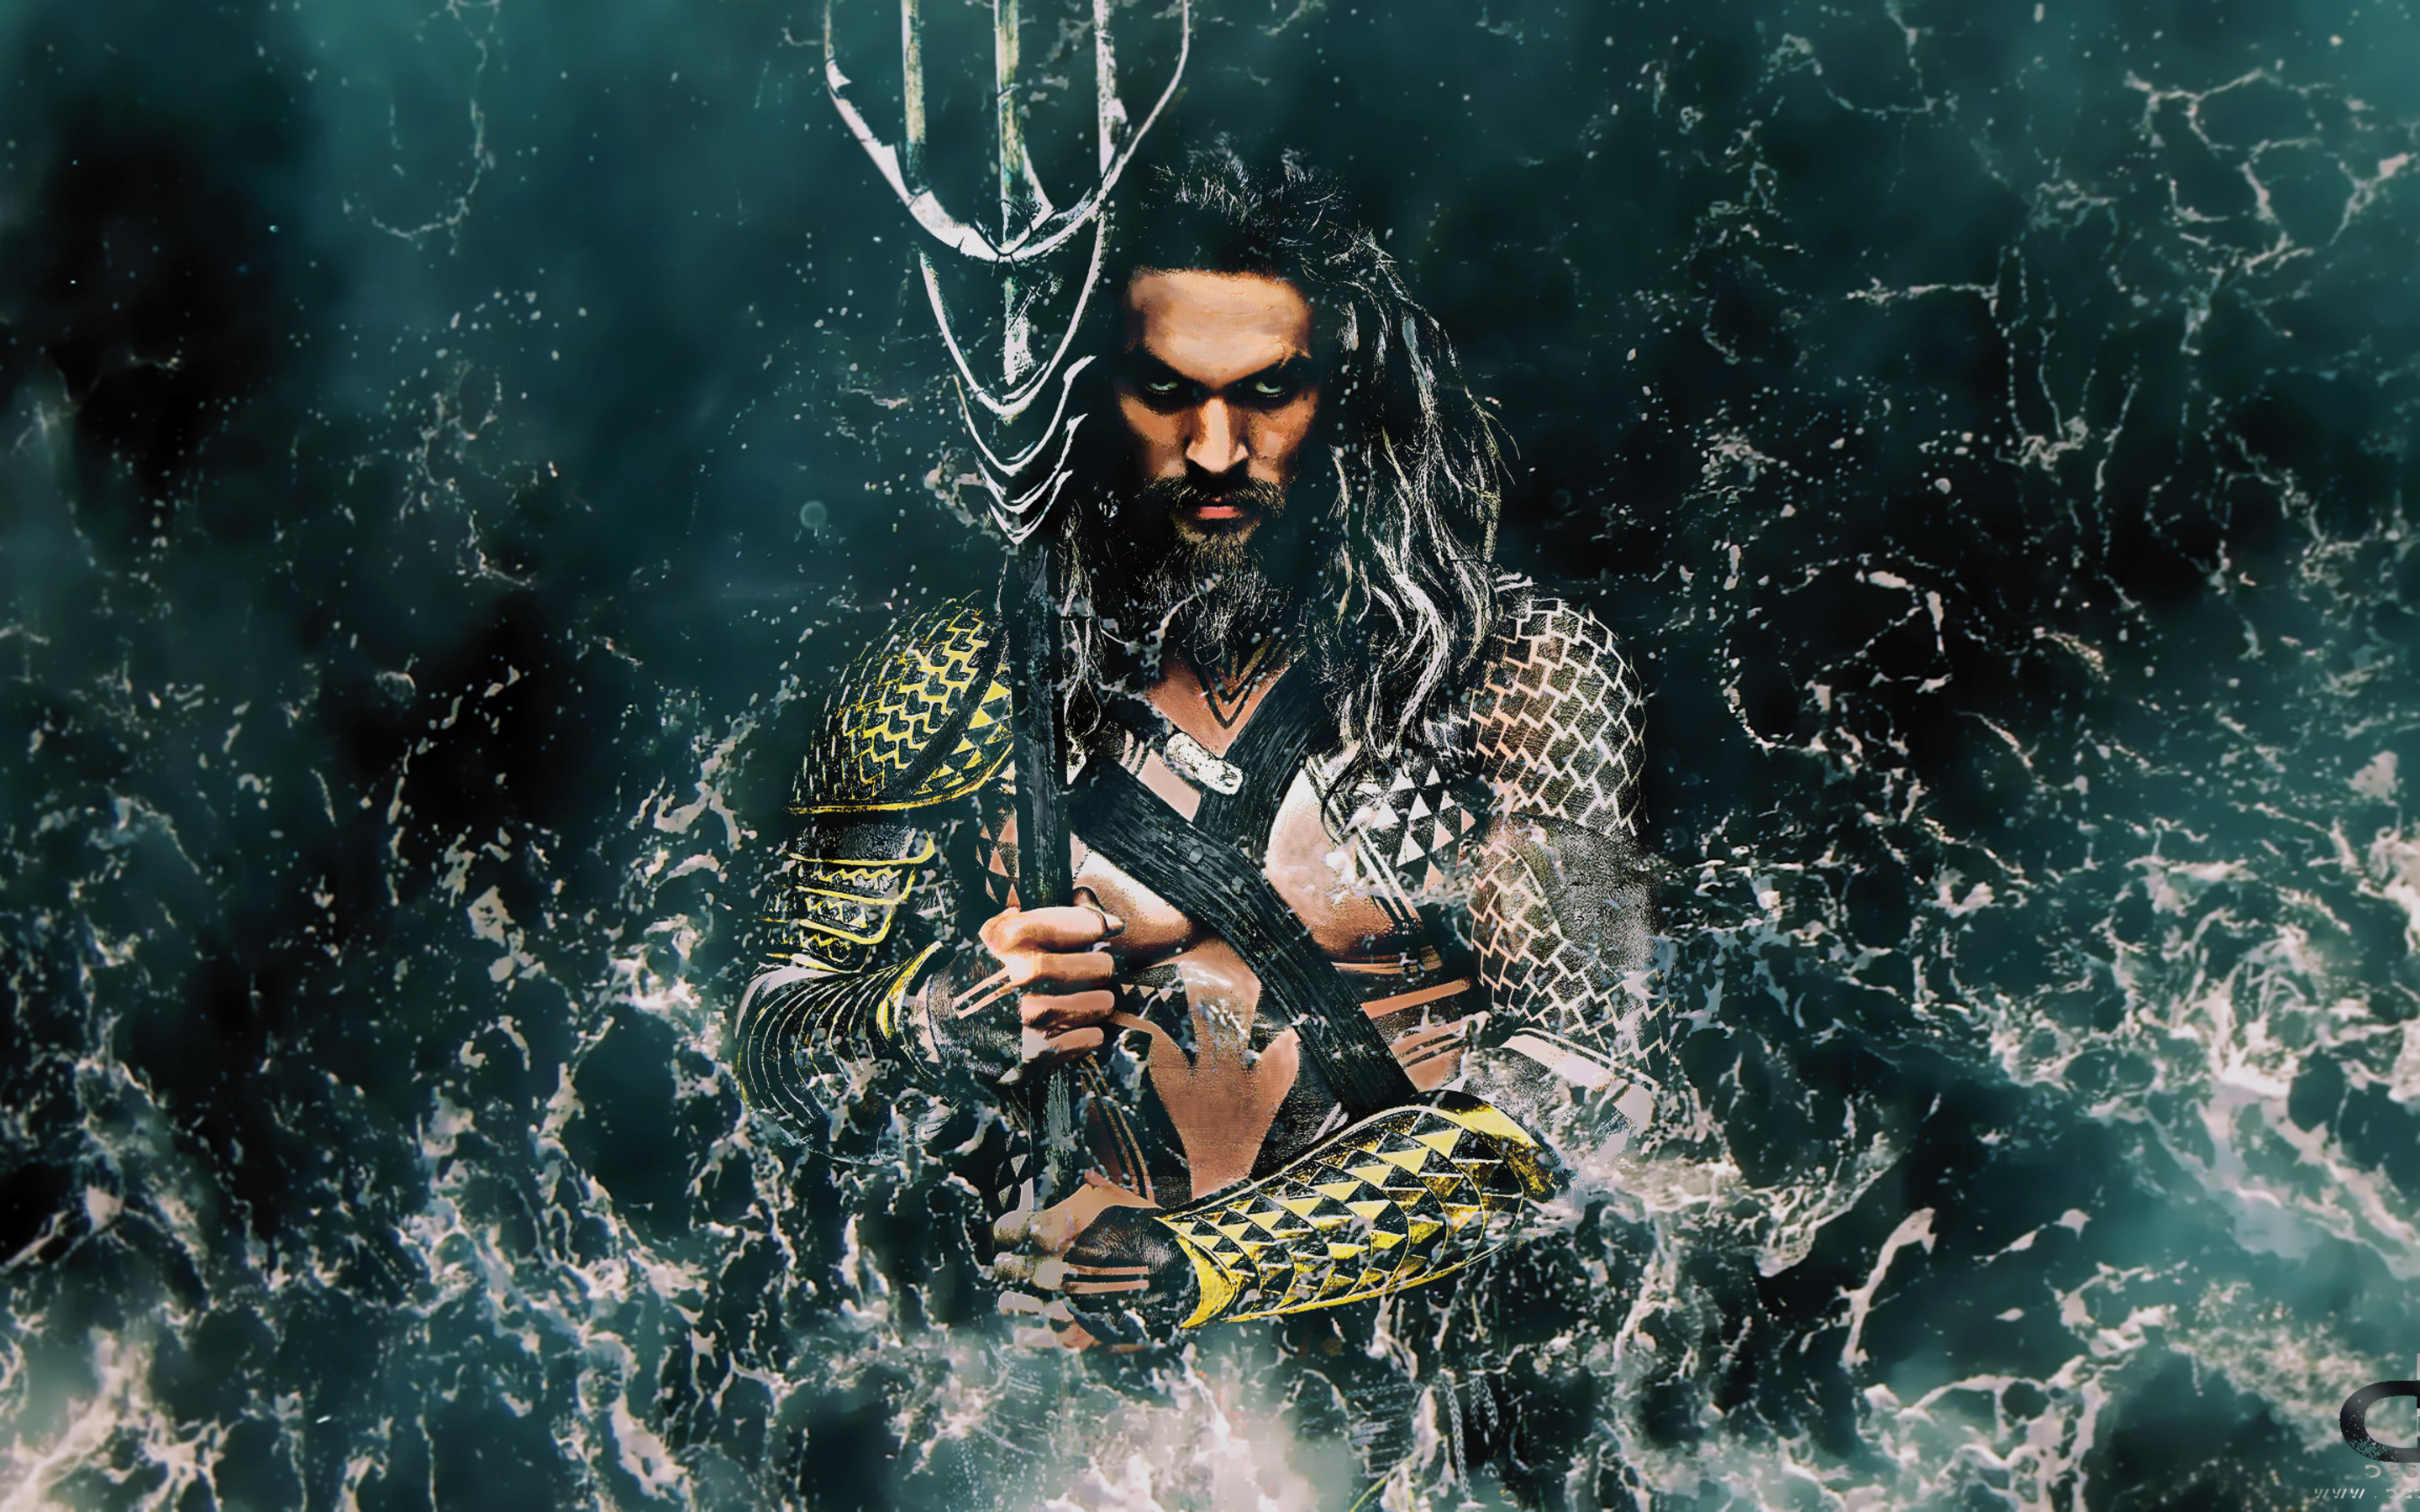 2880x1800 Aquaman Movie Macbook Pro Retina Hd 4k Wallpapers Images